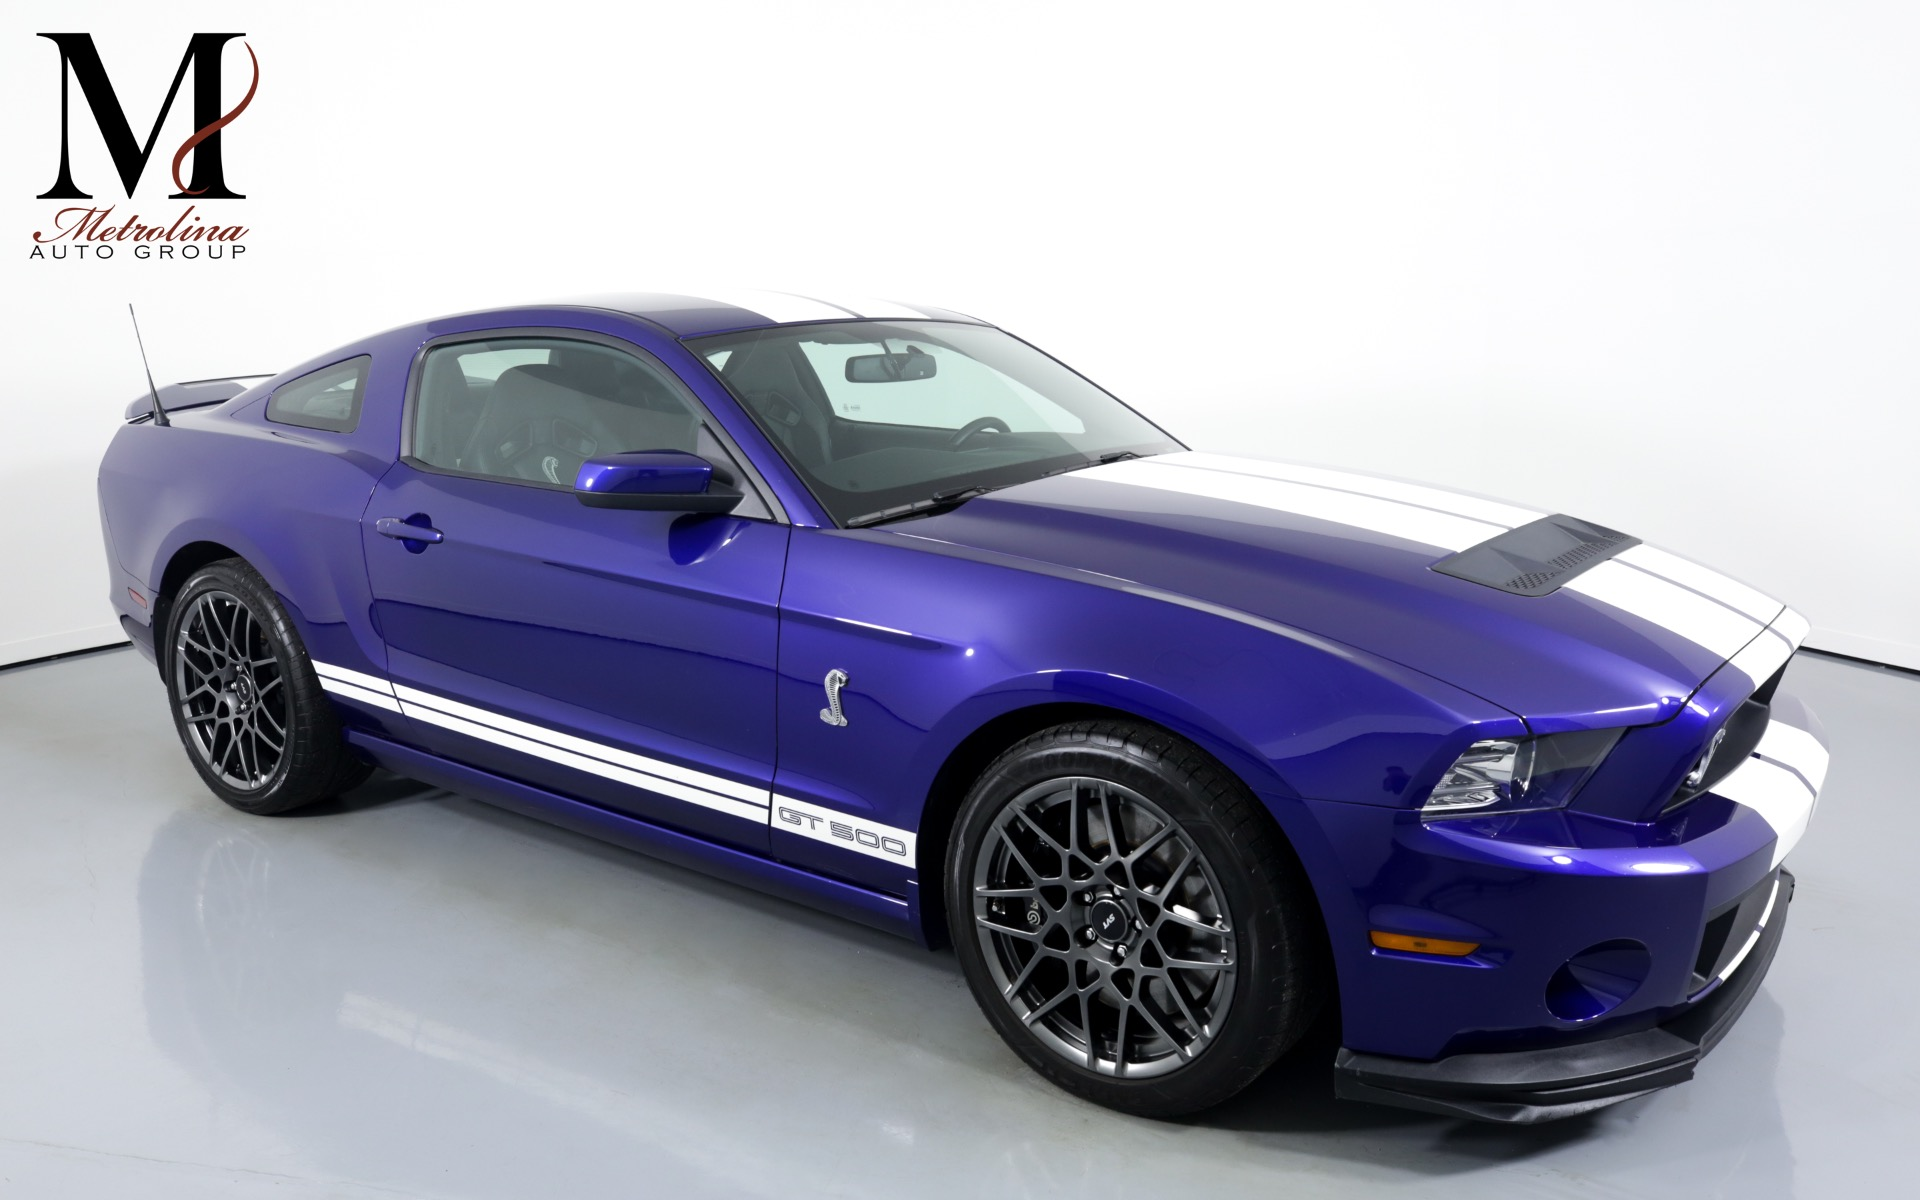 Used 2014 Ford Shelby GT500 for sale Sold at Metrolina Auto Group in Charlotte NC 28217 - 1